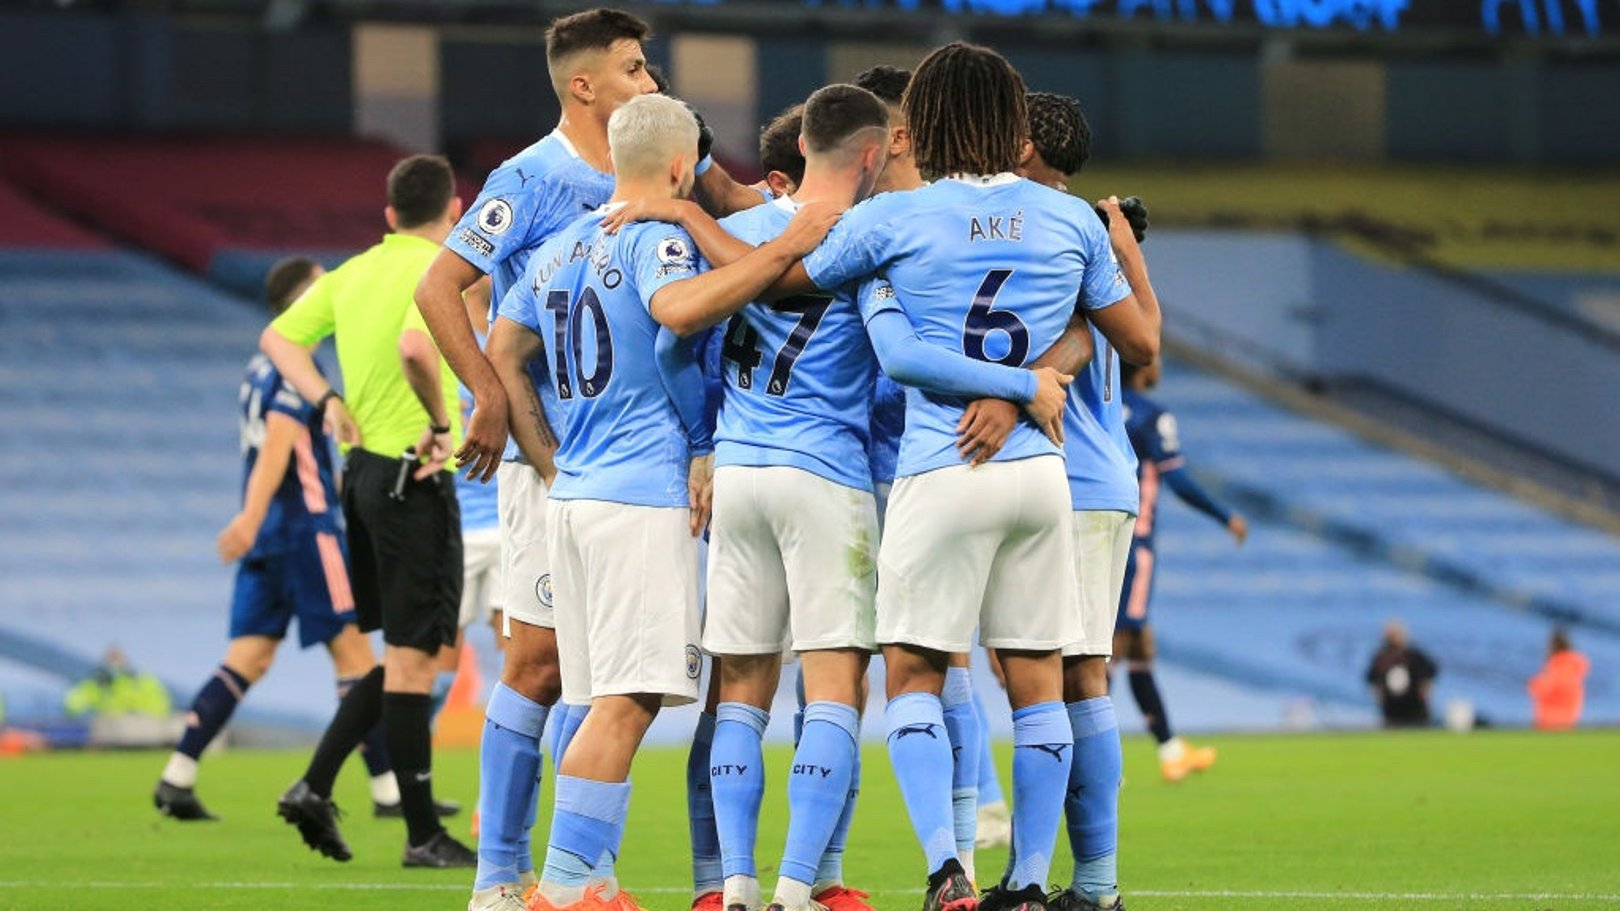 GROUP HUG: The players celebrate Sterling's opener.